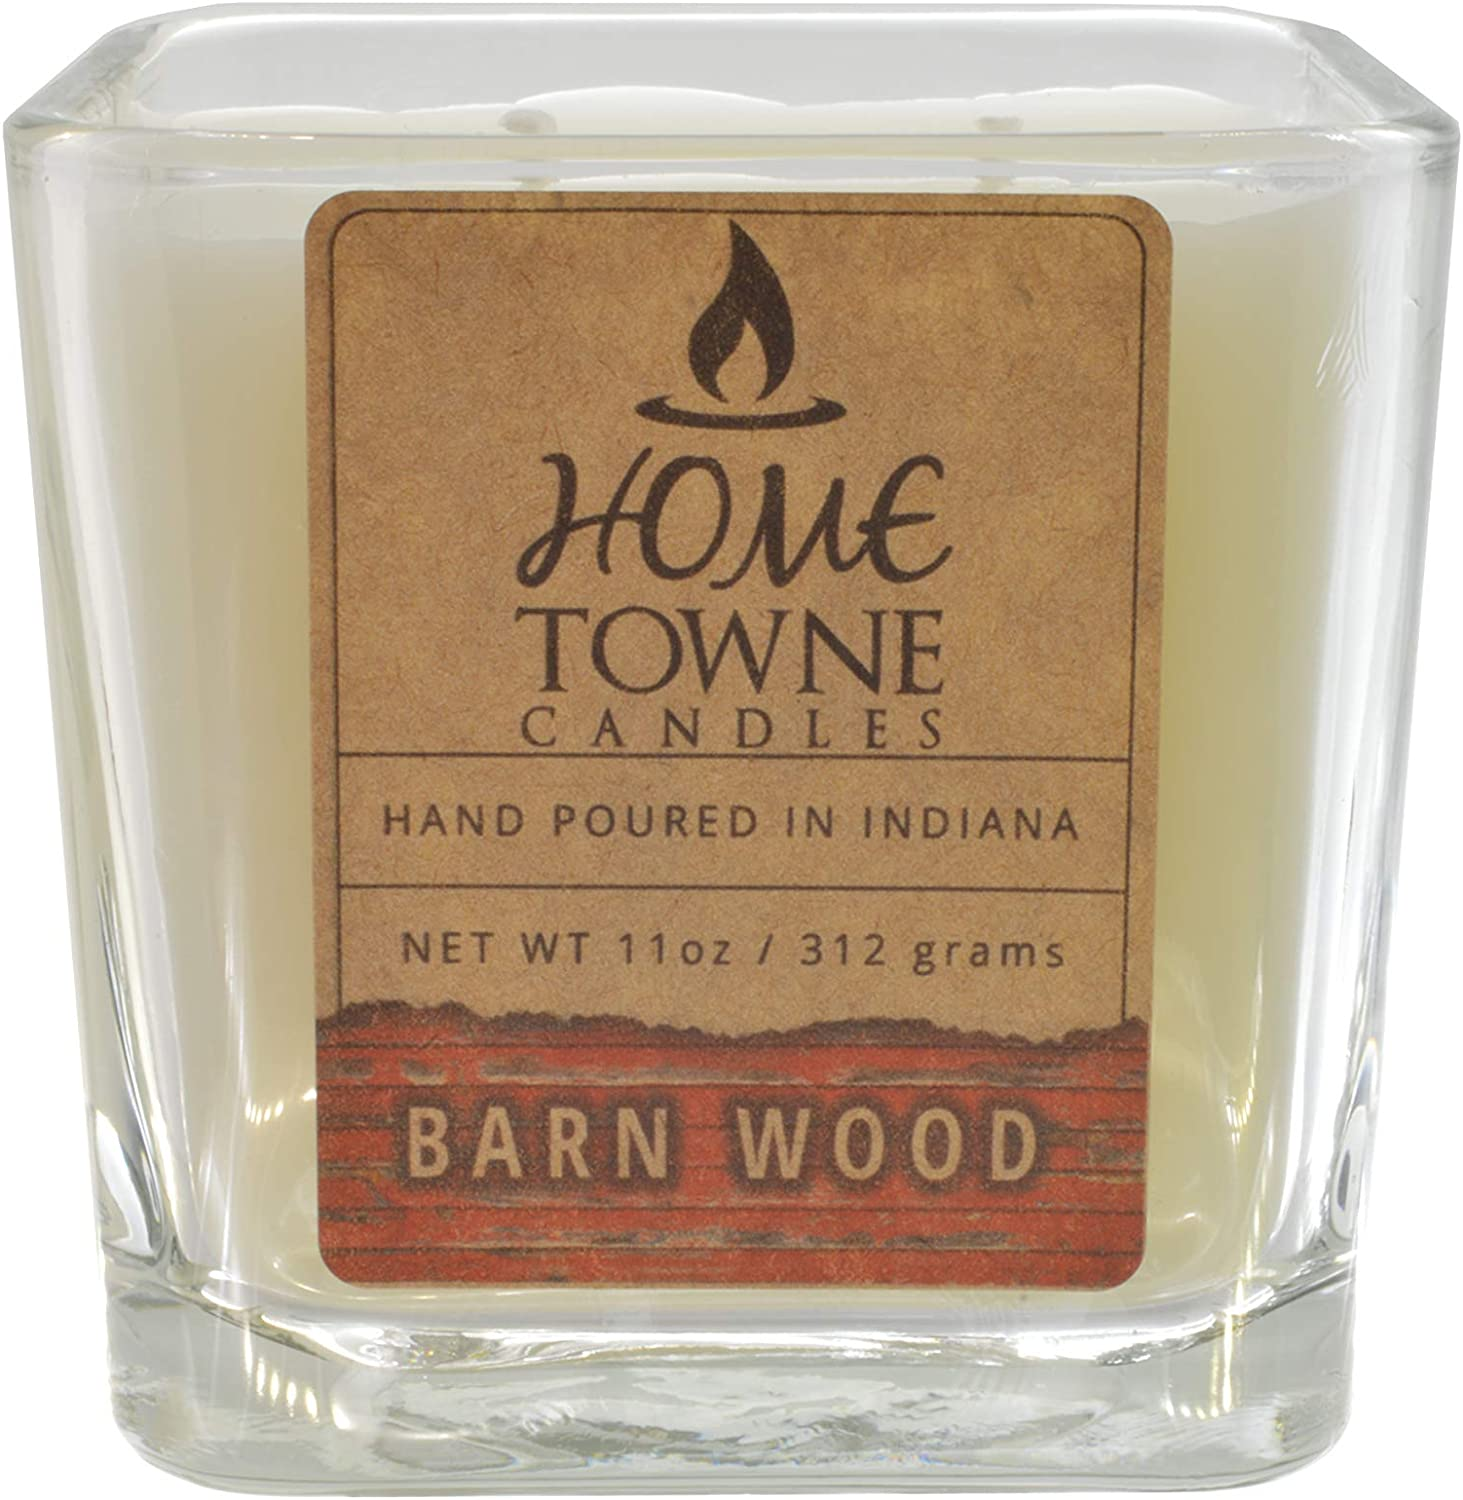 Home Towne Candles   11 Ounce Glass Jar Barn Wood Rustic Scented Candle   Hand Poured in The USA Soy Paraffin Wax Blend with Cotton Wick   White